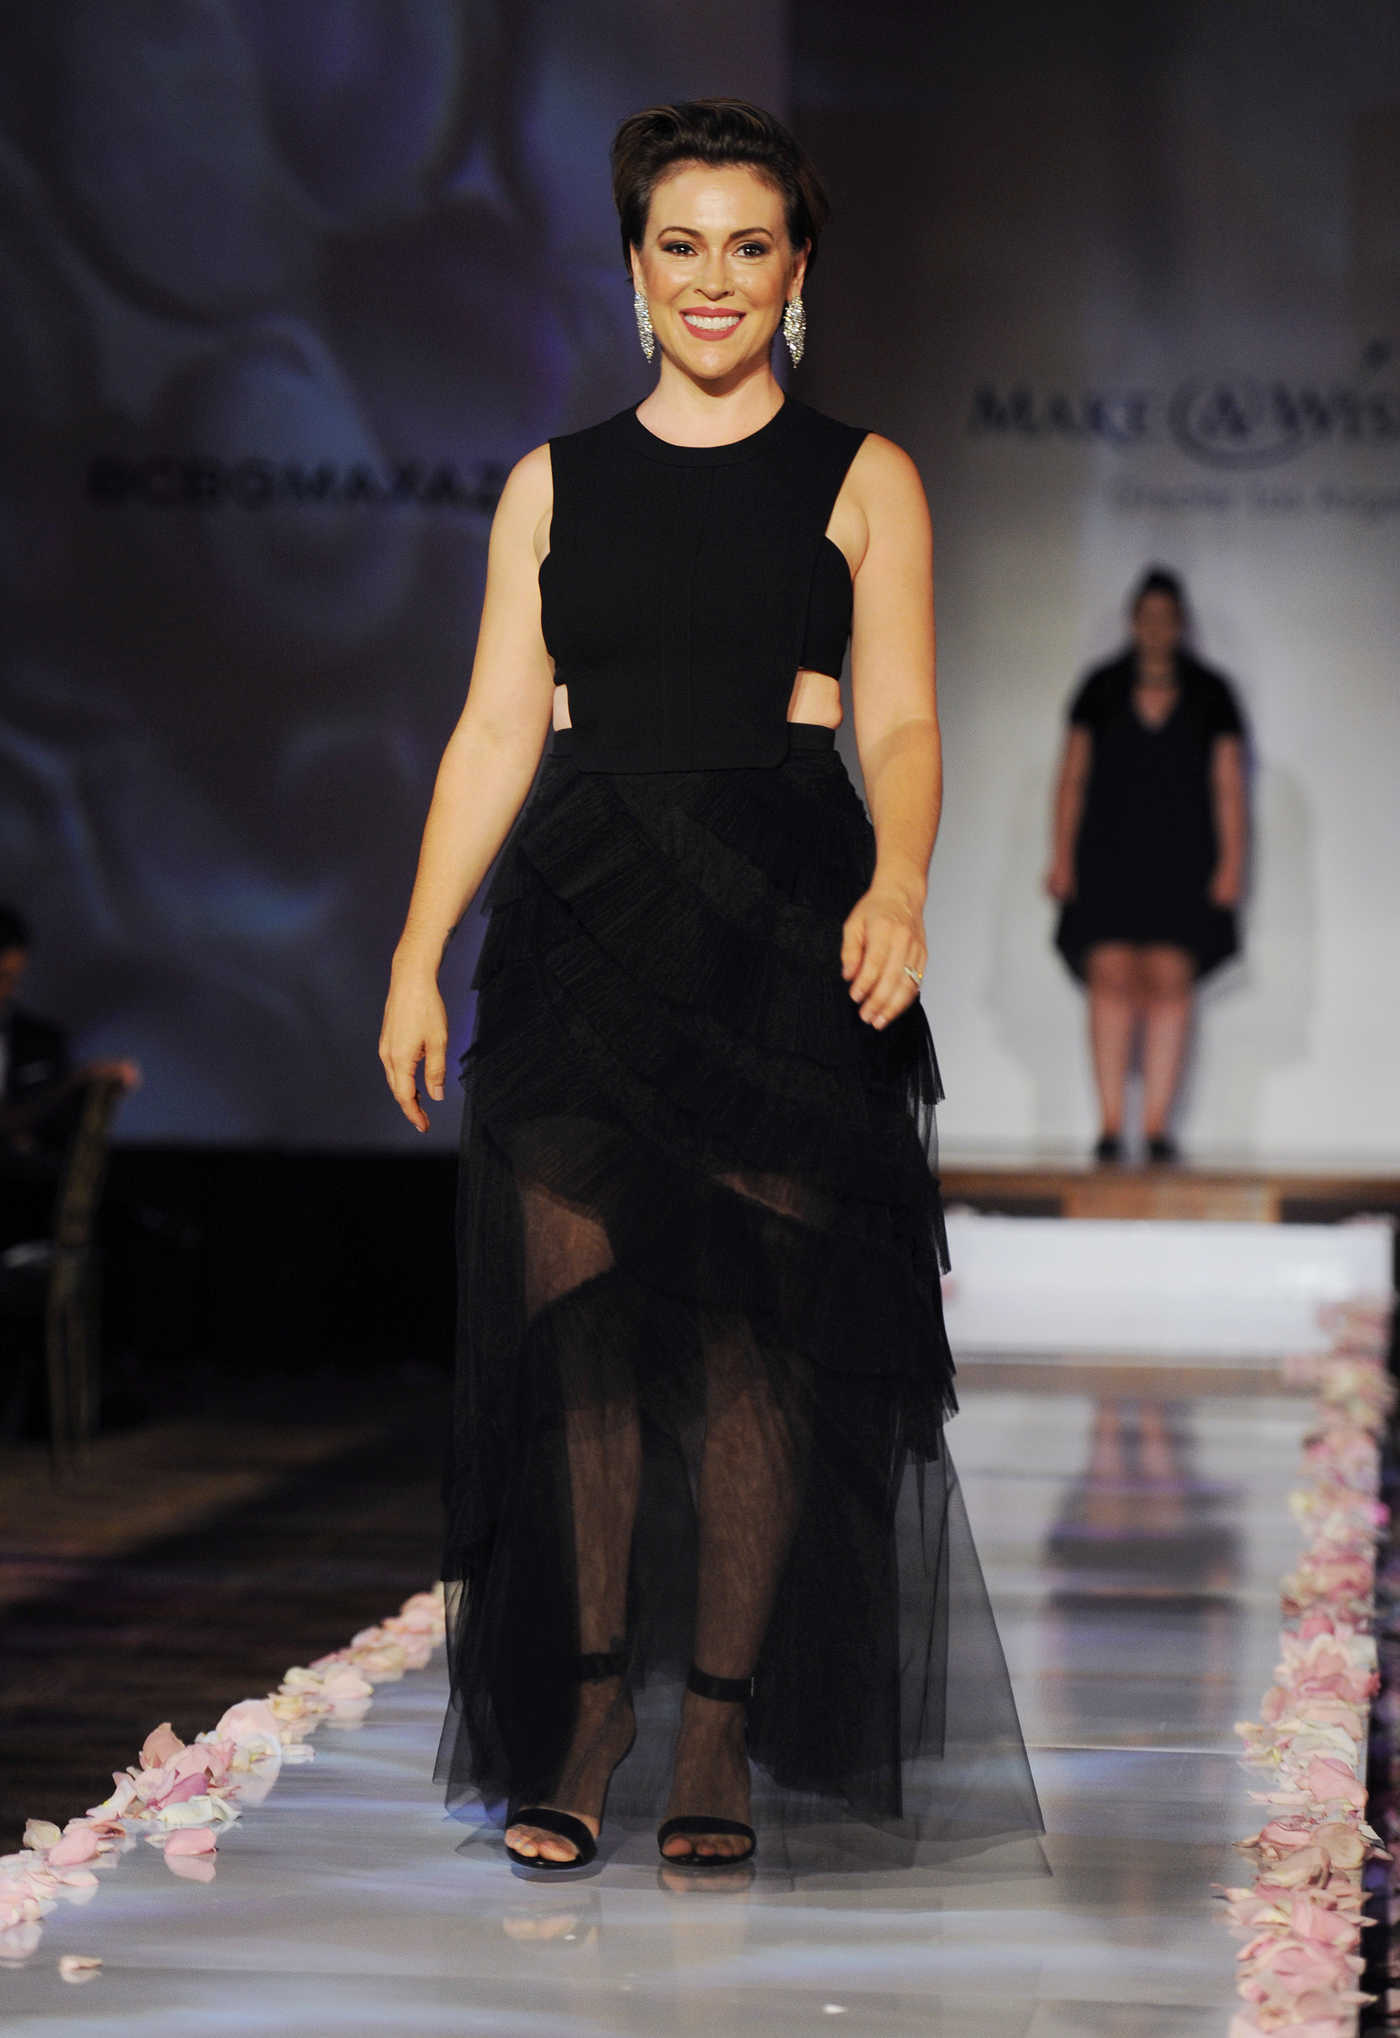 Alyssa Milano at BCBG Make-A-Wish Fashion Show in Los Angeles 08/24/2016